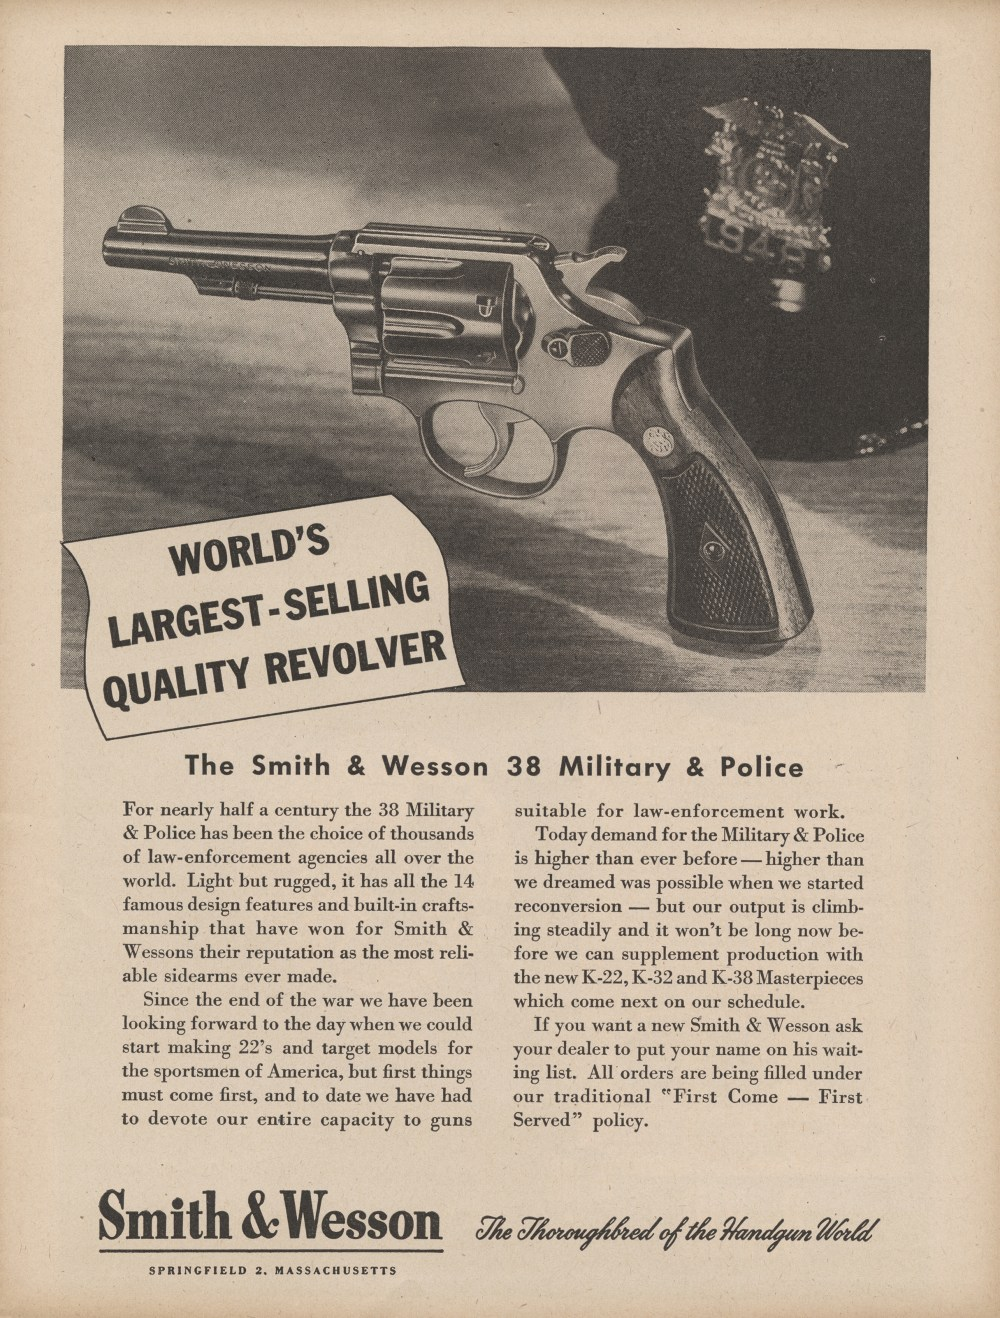 medium resolution of in 1899 smith wesson introduced what would become its most successful revolver the